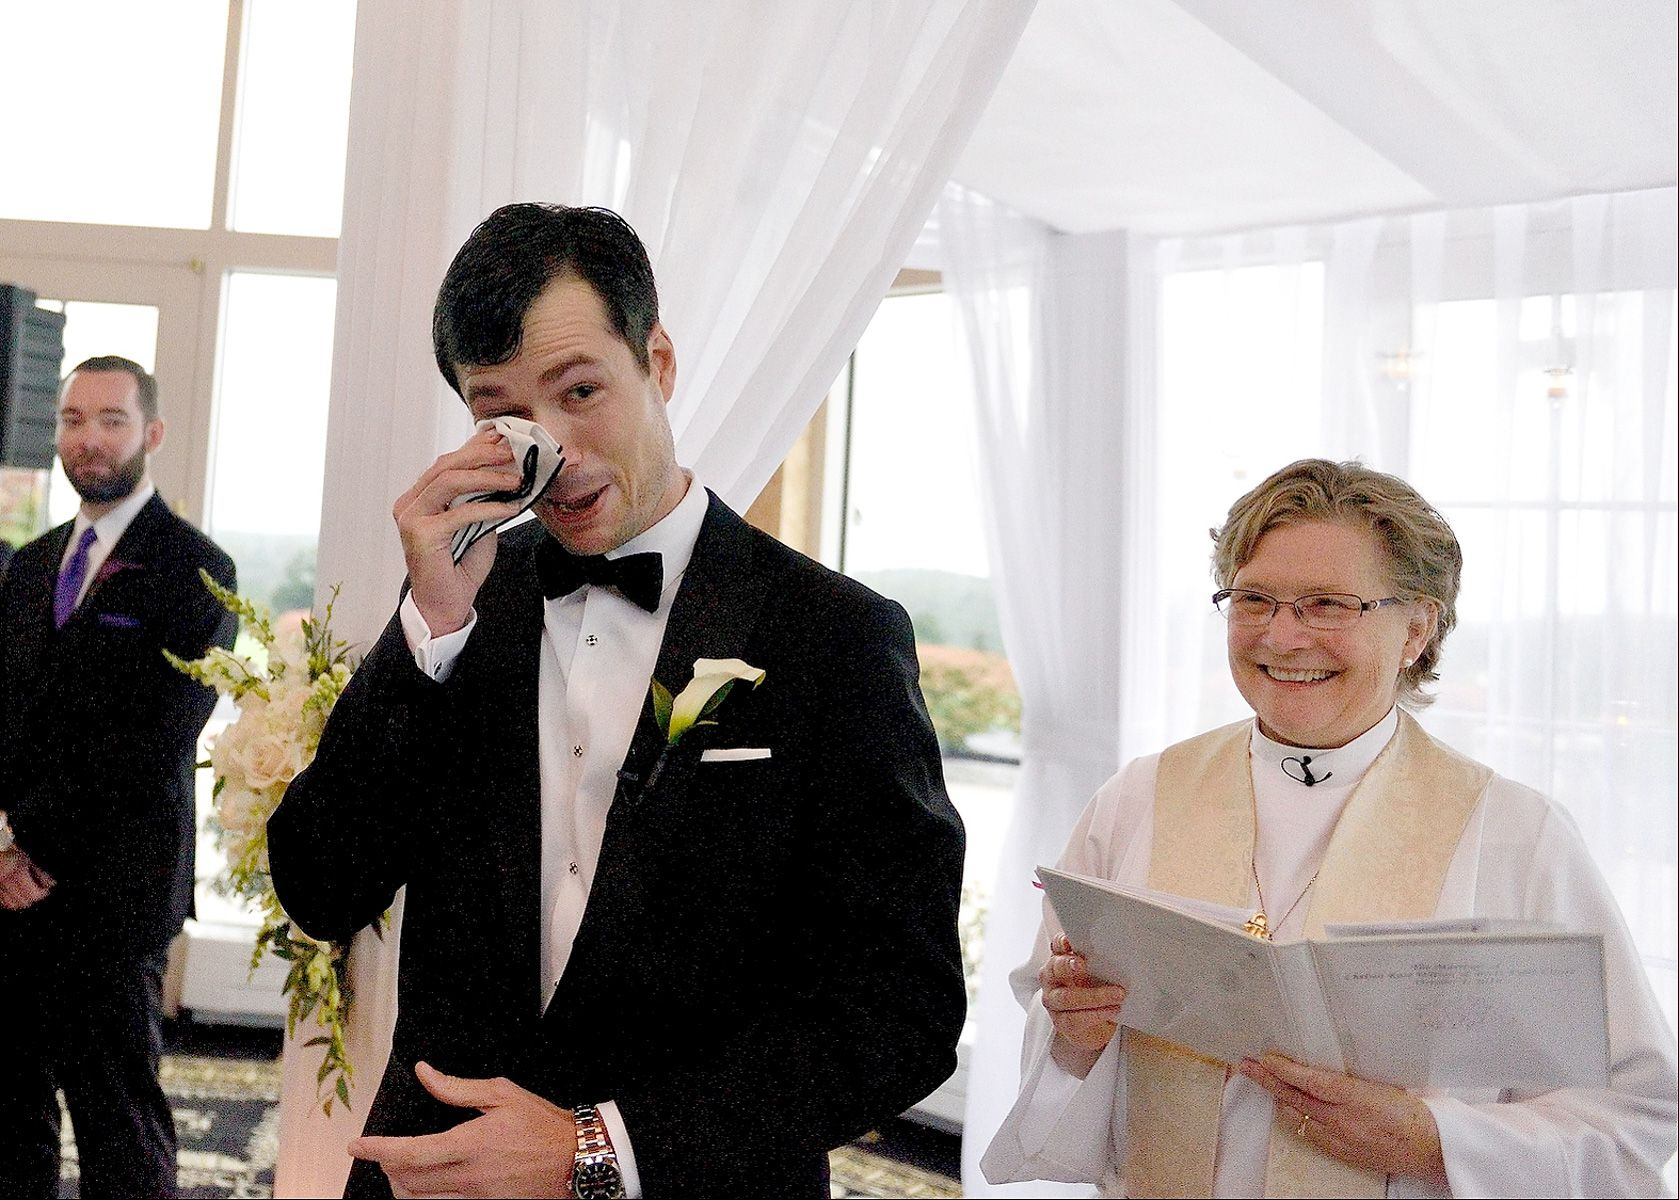 A Groom's Emotion At The Golf Club Ceremony